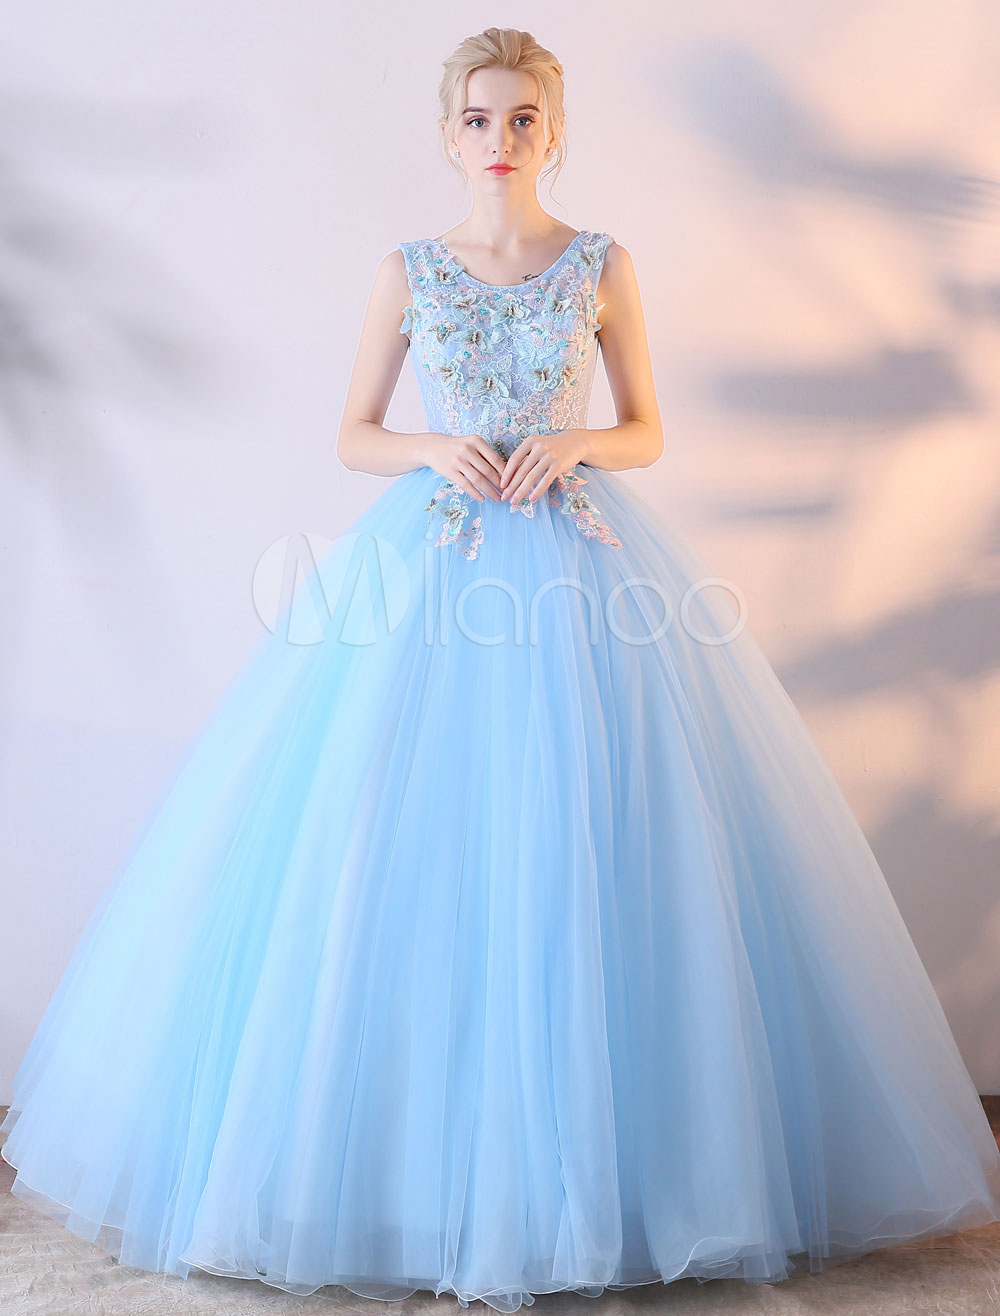 Prom Dress Ball Gown Baby Blue Lace Flowers Colored Wedding Dress V